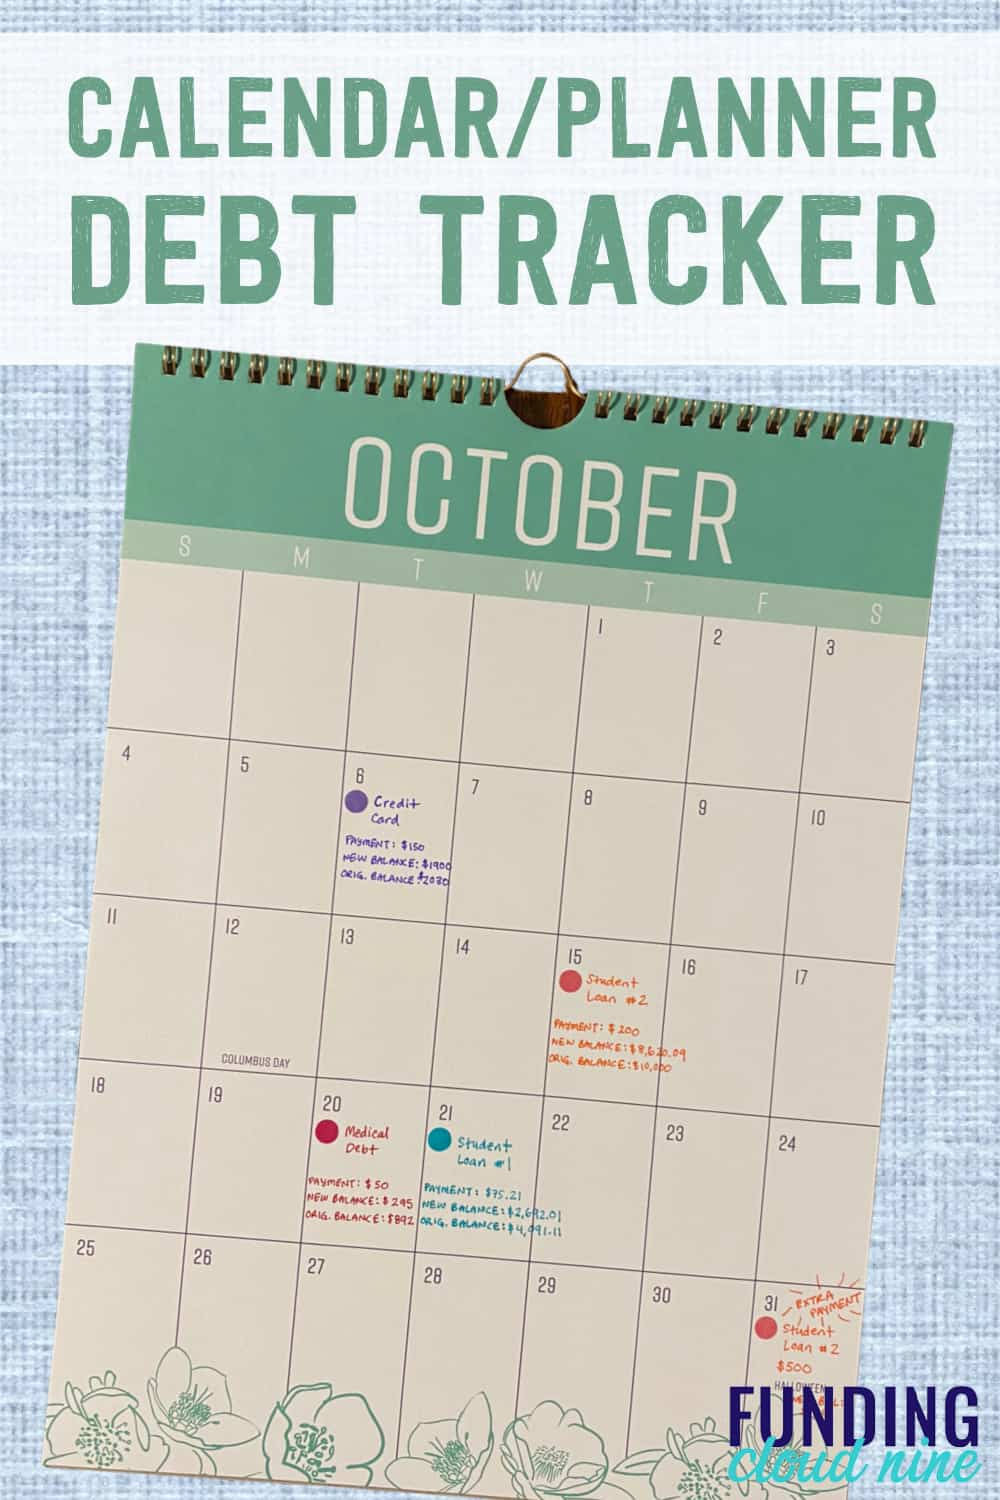 Use a calendar or planner to help you track your debt payoff to motivate you to pay off debt faster